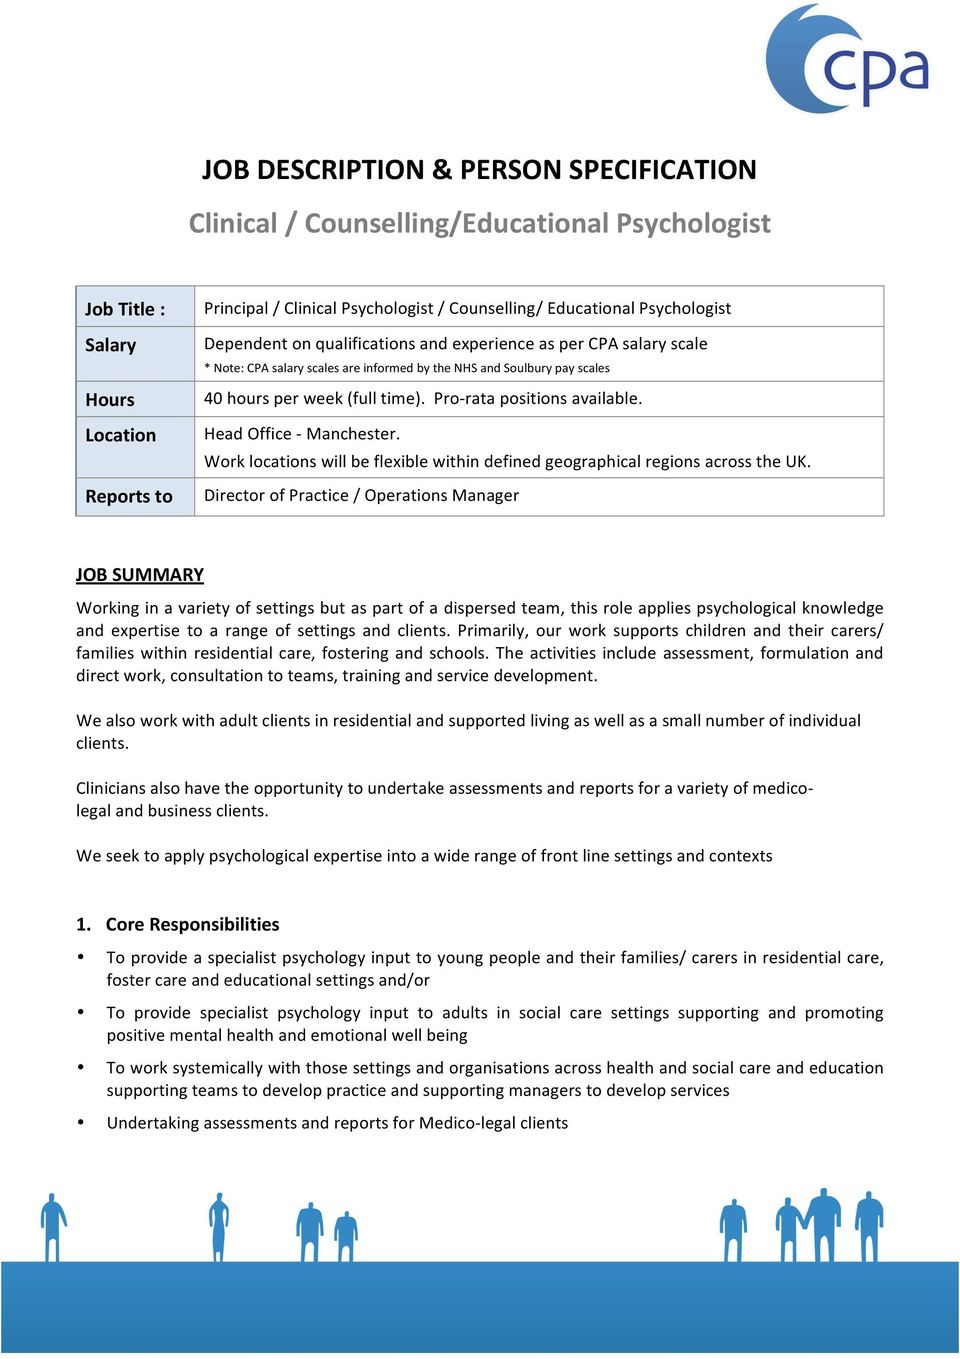 Job Description Person Specification Clinical Counselling